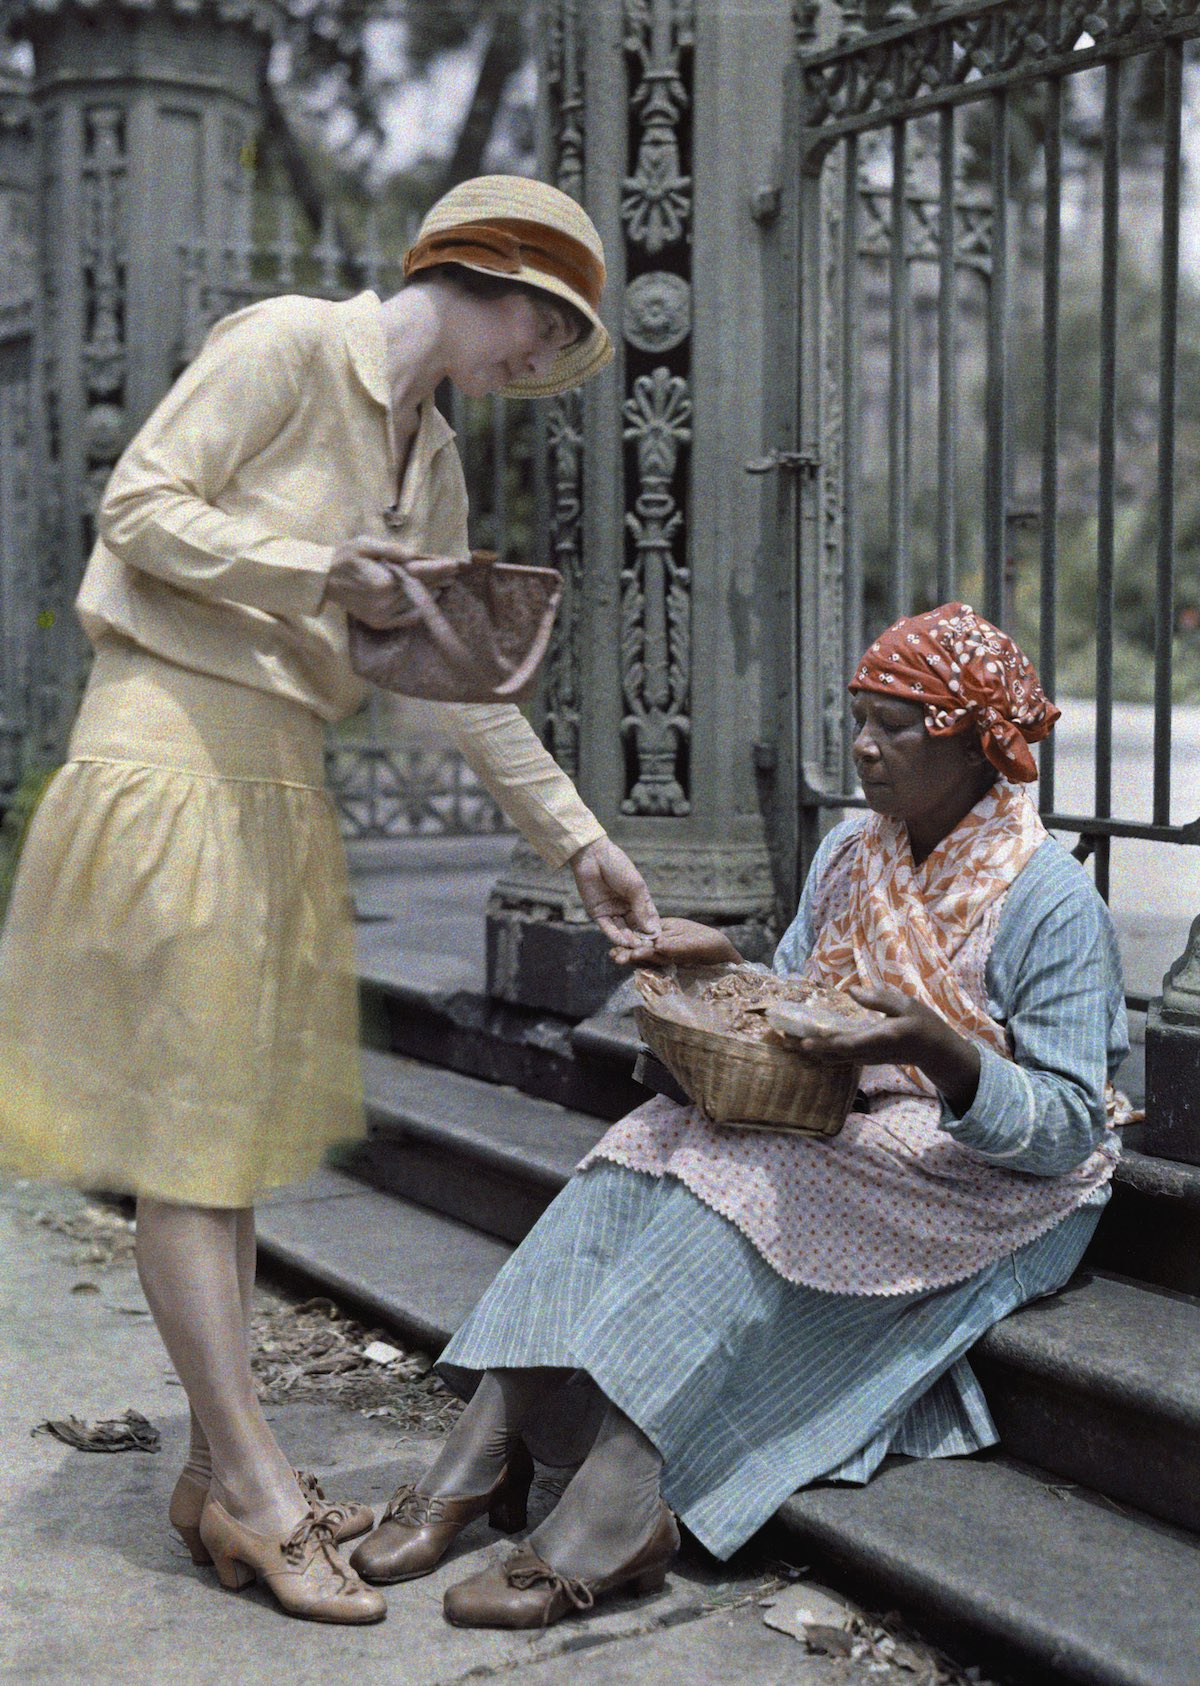 A woman sitting on stone steps in the French Quarter sells pralines.